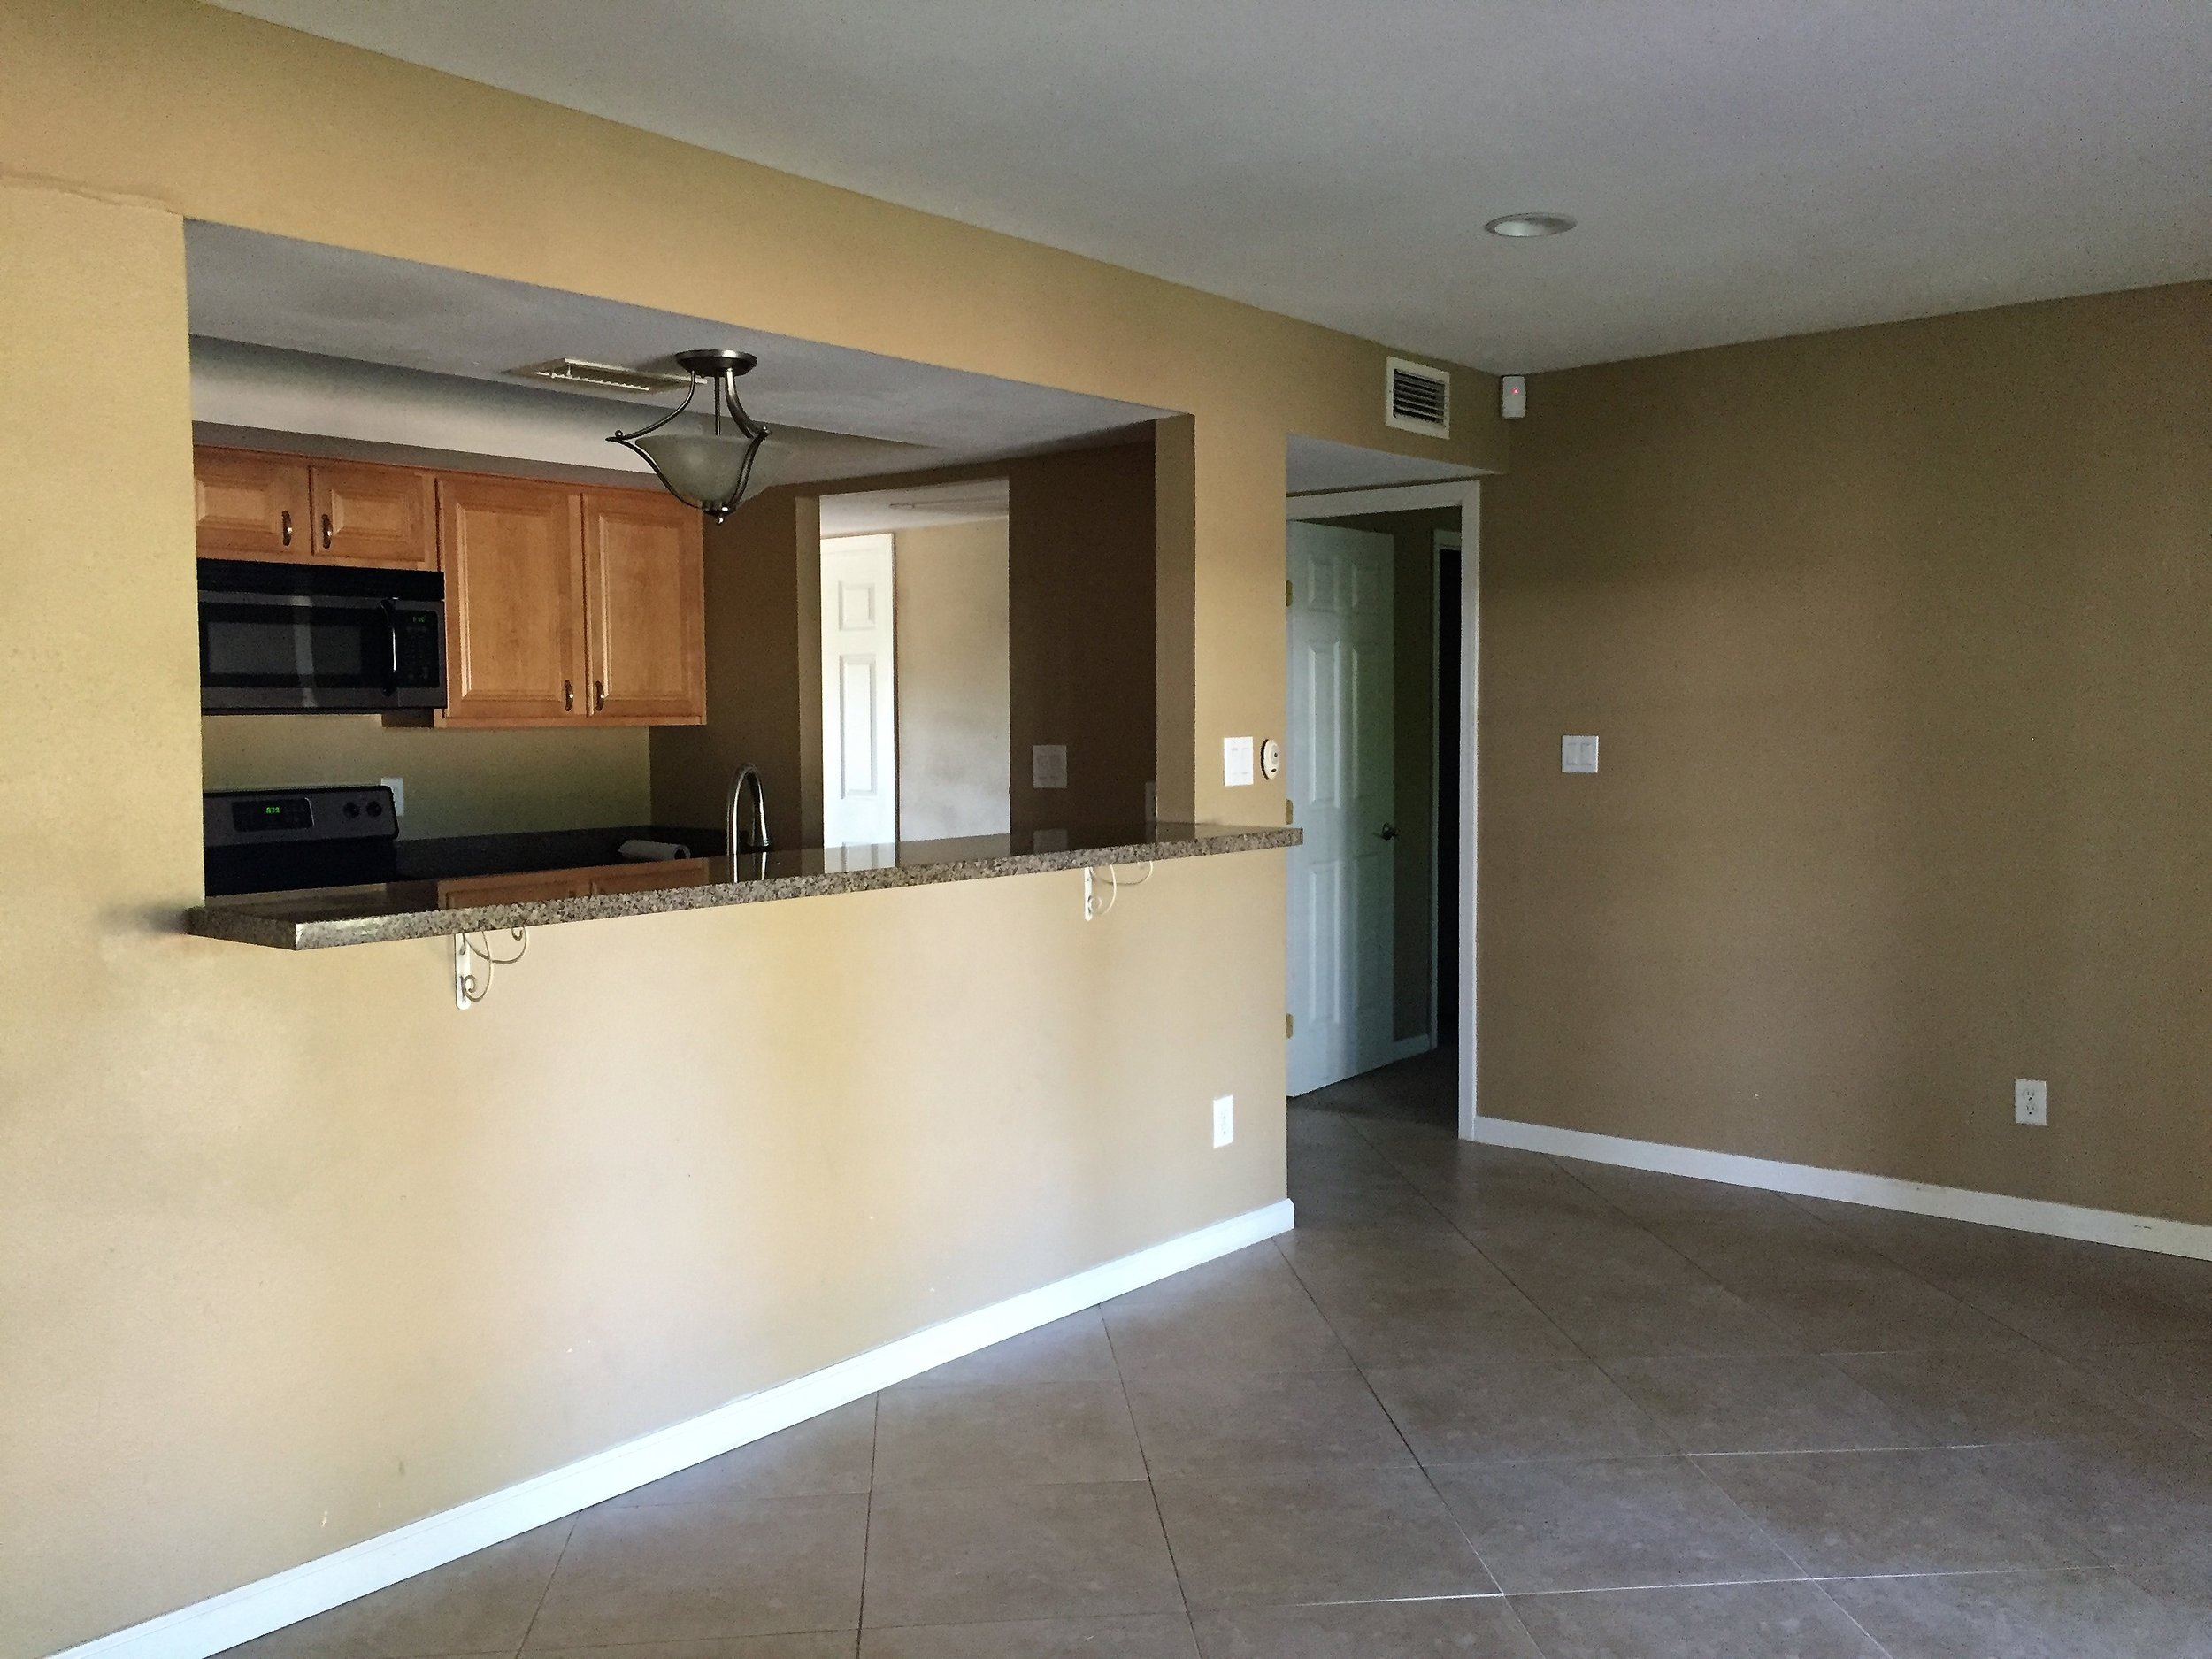 Before demo: Kitchen (from the left)